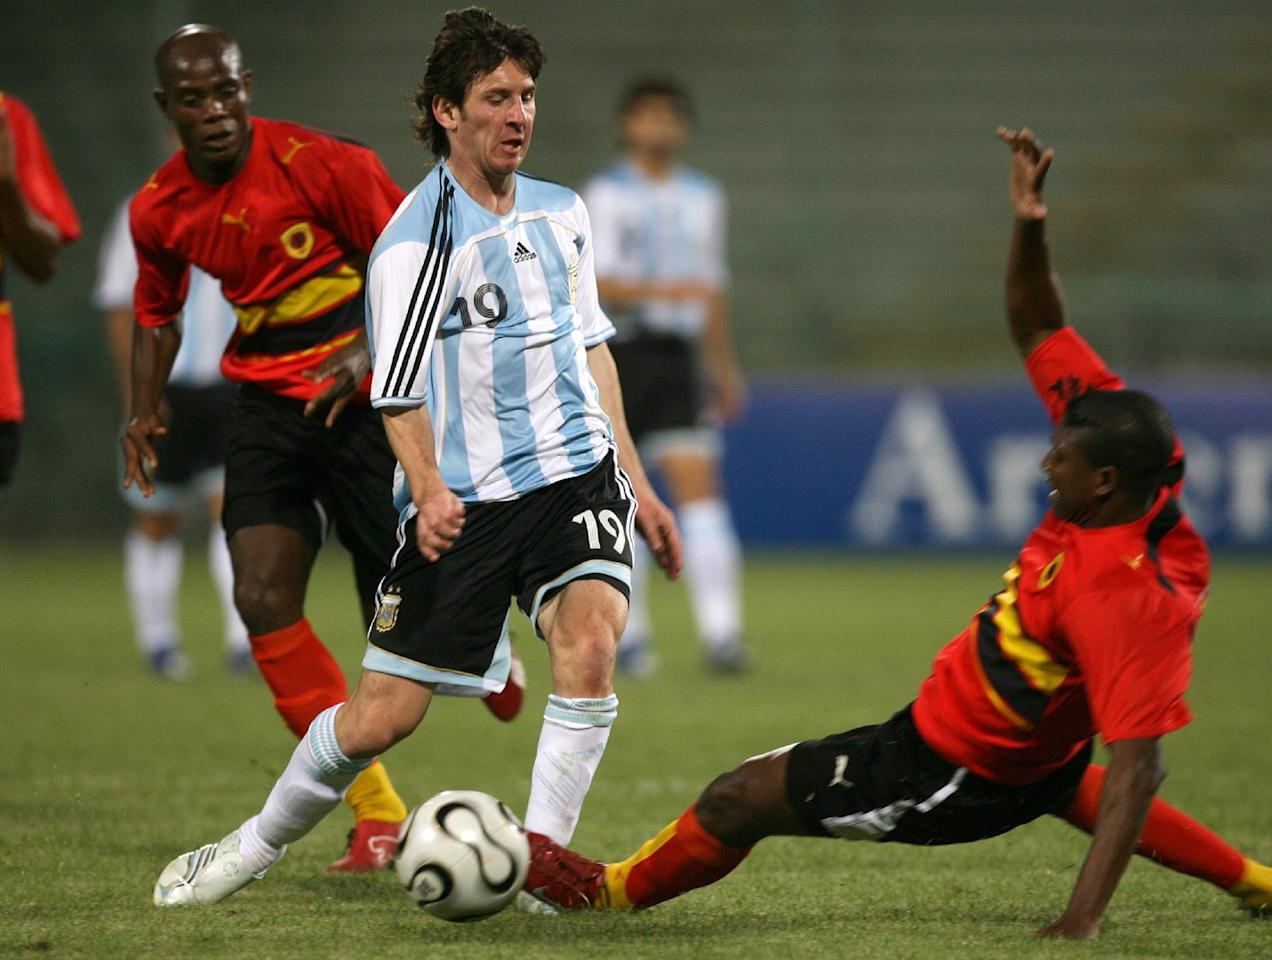 """FILE - In this May 30, 2006, file photo, Argentina's Lionel Messi dribbles past an unidentified Angola player during an exhibition soccer match in Salerno, Italy. In Spain, young soccer players can sign professional contracts when they turn 16, the minimum work age stipulated by Spanish law. Before that, children join training academies run by soccer clubs that field youth teams in amateur leagues. The most well-known example in Spain is Barcelona's """"La Masia"""" academy, where Lionel Messi started training at the age of 13 when his family emigrated from Argentina.  (AP Photo/Francesco Pecoraro, File)"""